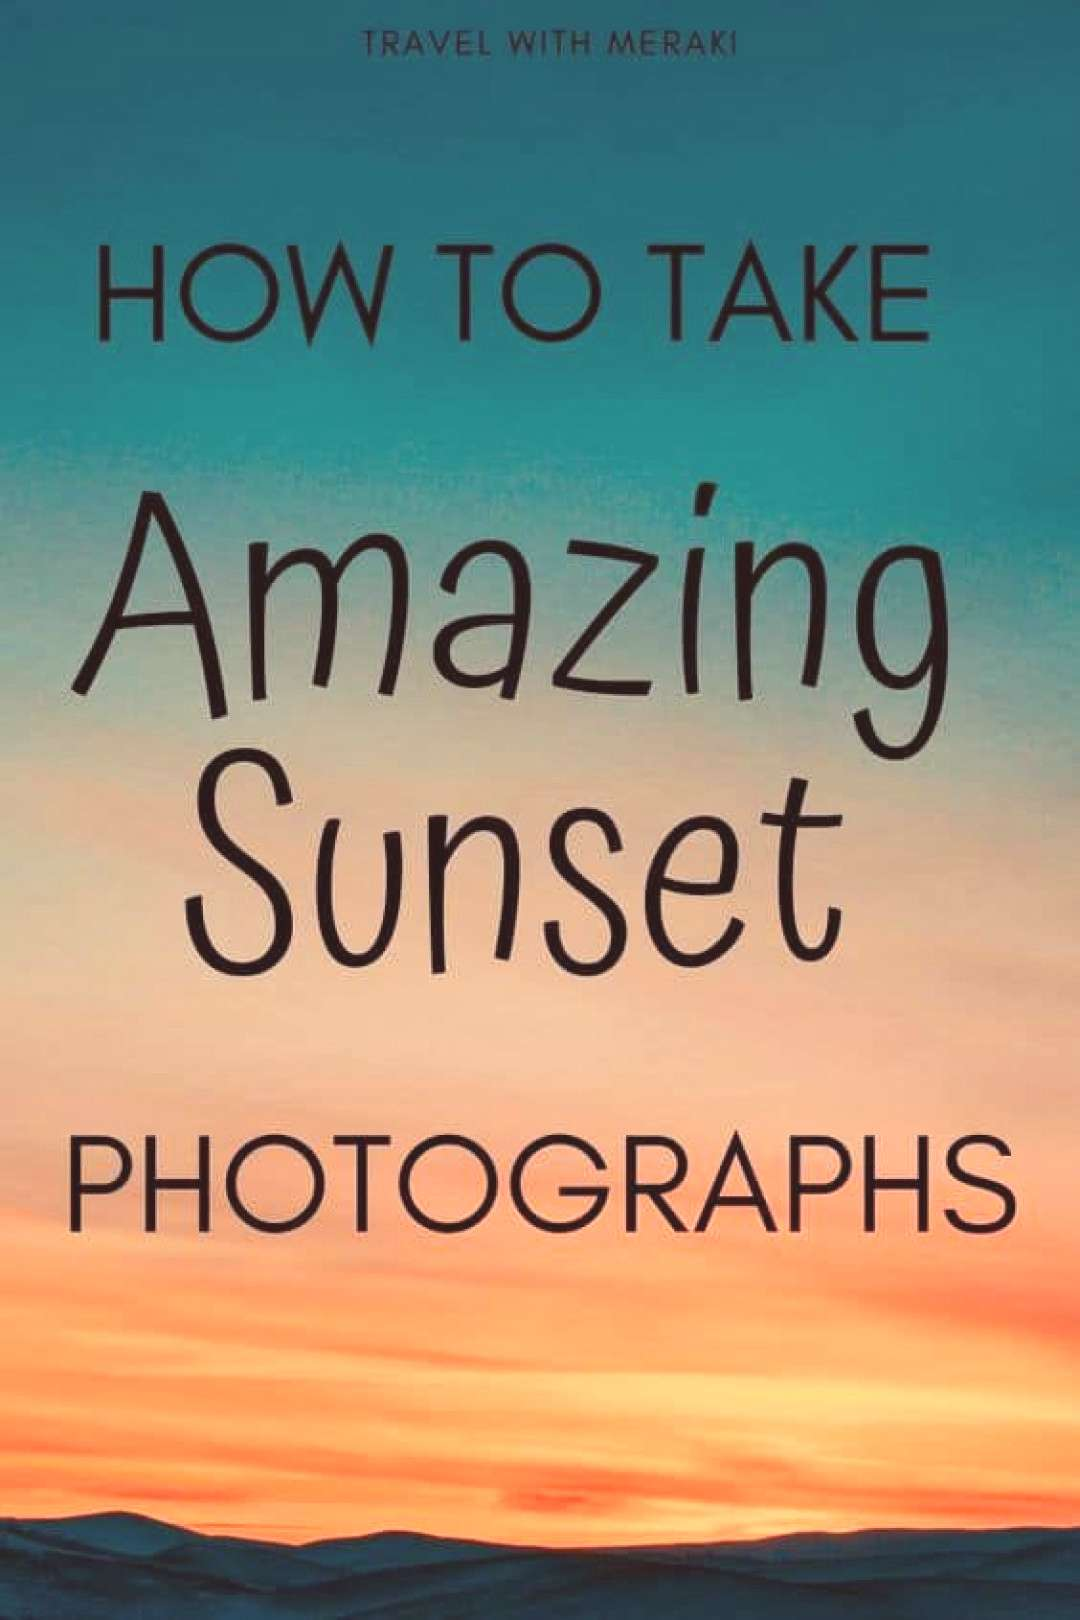 Get all the best photography tips to help you take amazing sunset photographs. Easy Photography Tip